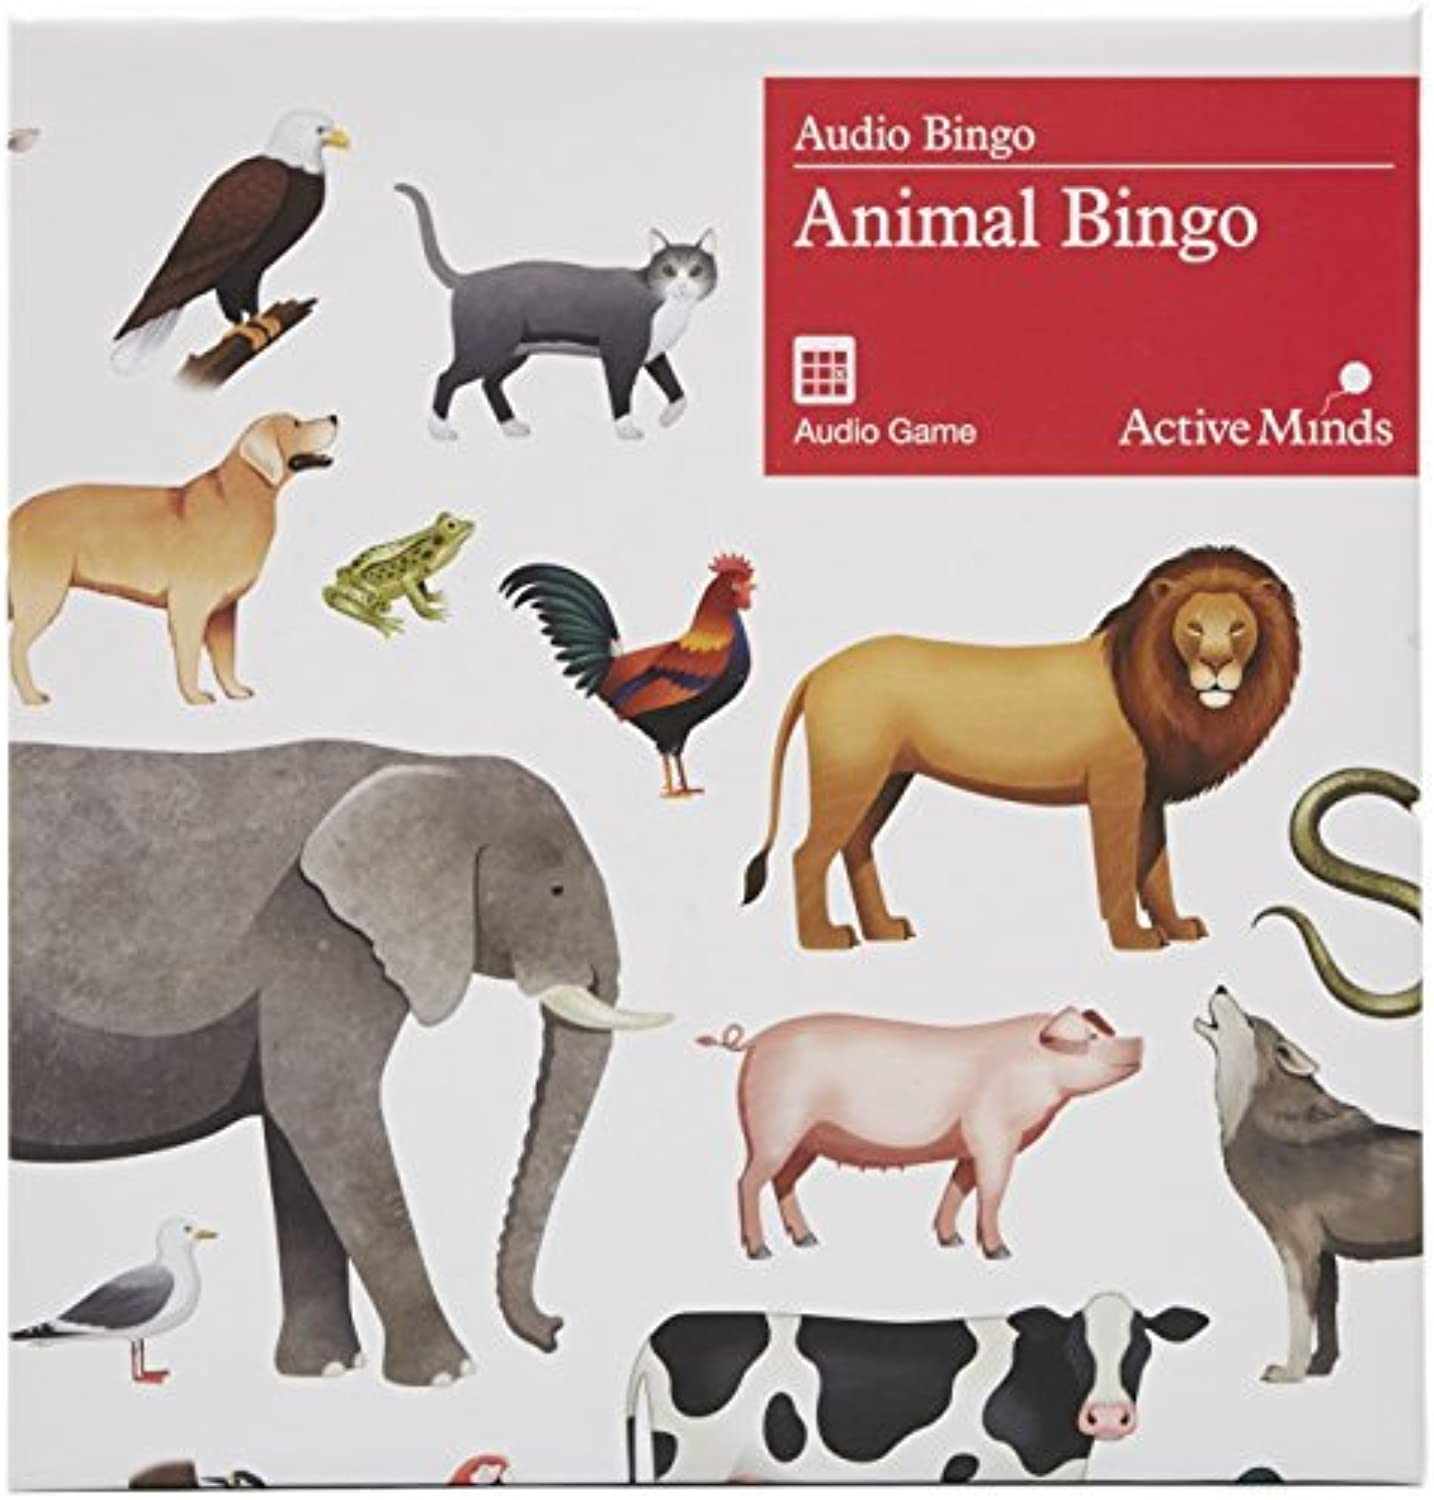 Animal Bingo - An audio game   activity designed specifically for people with dementia   Alzheimer's (early-late stage) by Active Minds